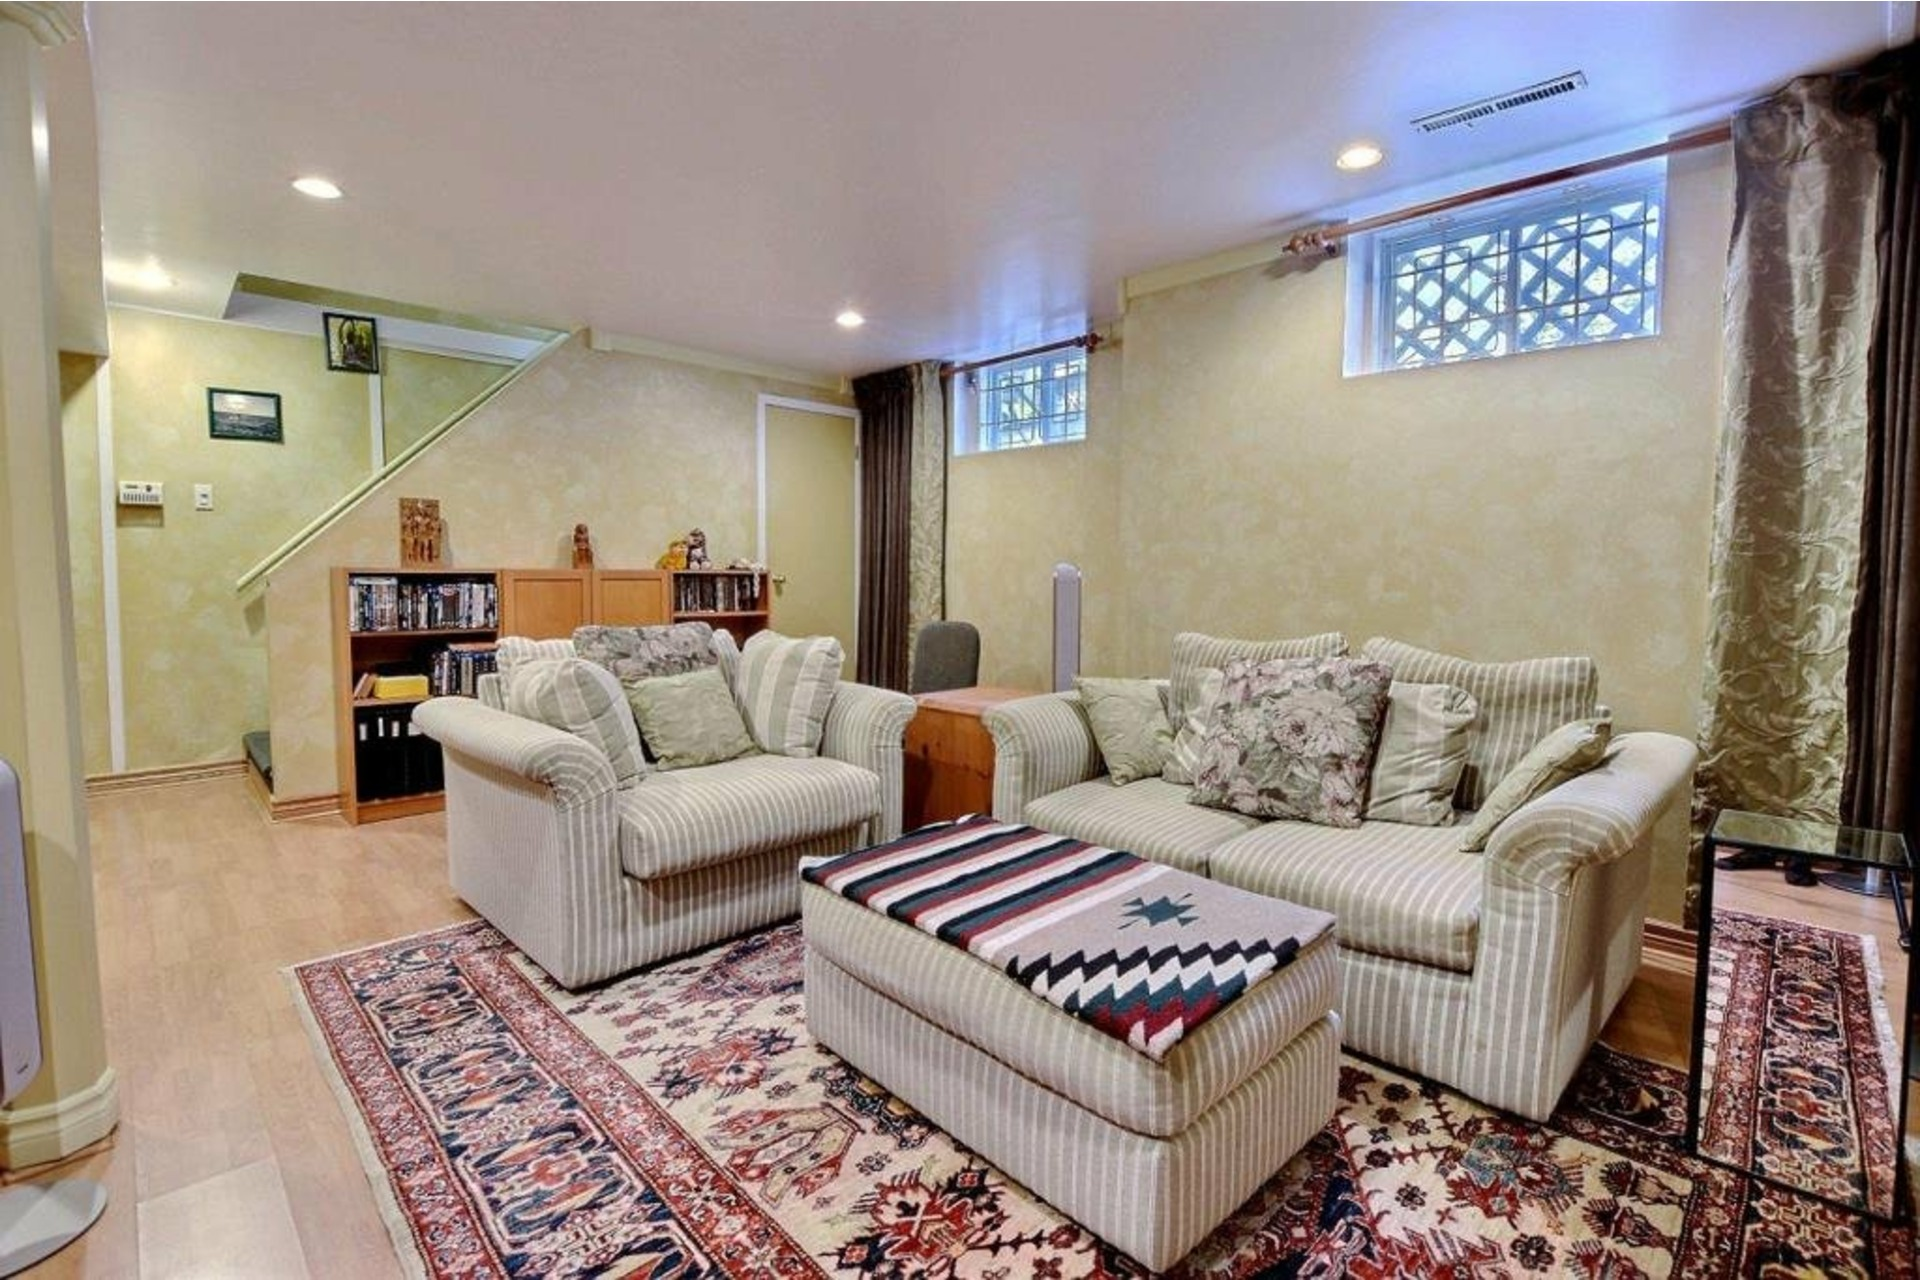 image 17 - House For rent Beaconsfield - 11 rooms